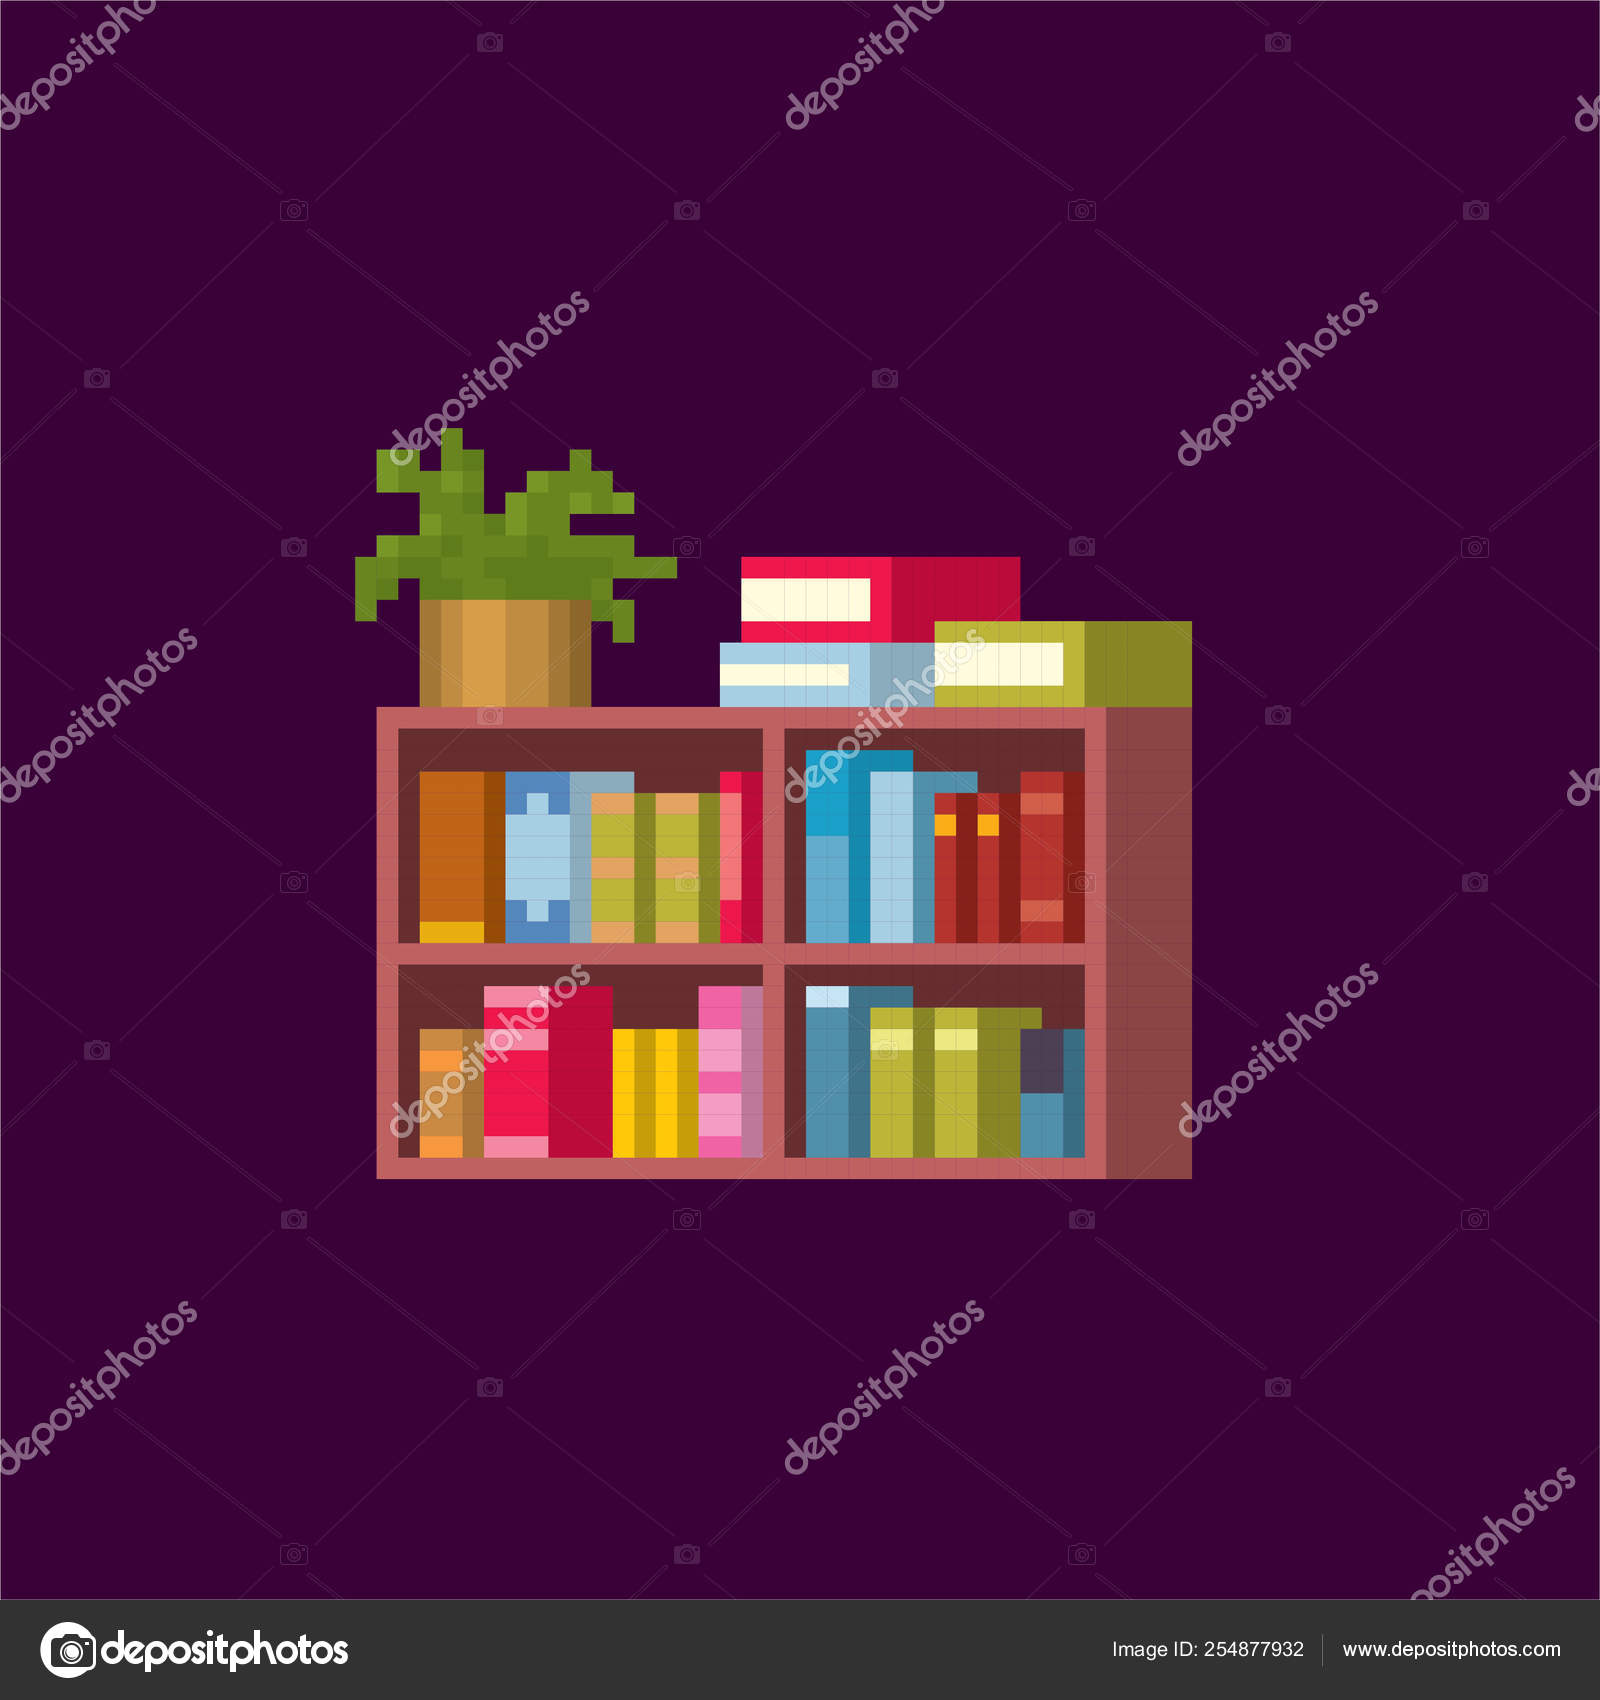 Bookcase  Pixel art  Old school computer graphic  Element